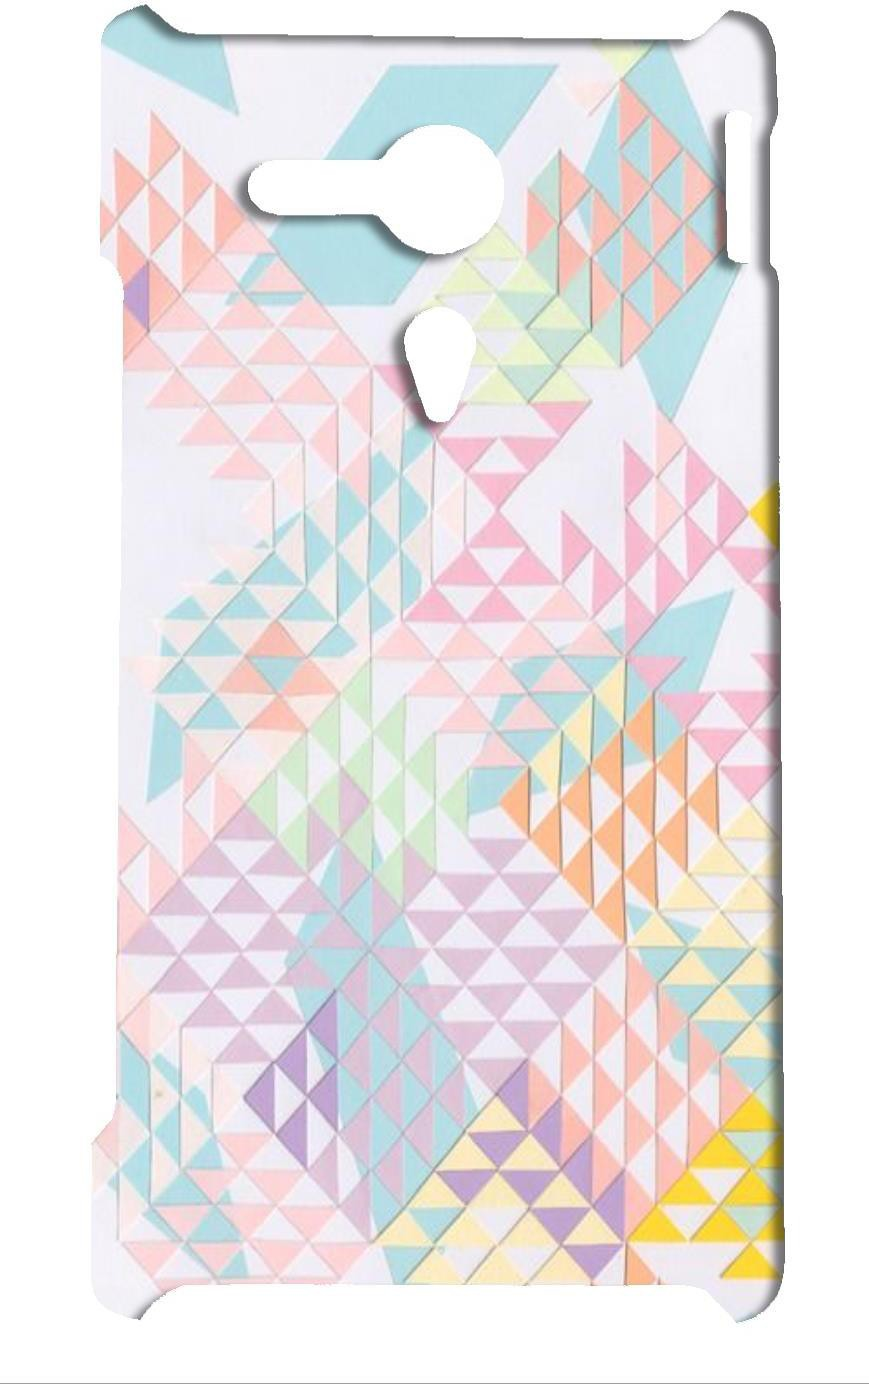 Mobile Cover Shop Back Cover for Sony Xperia SP